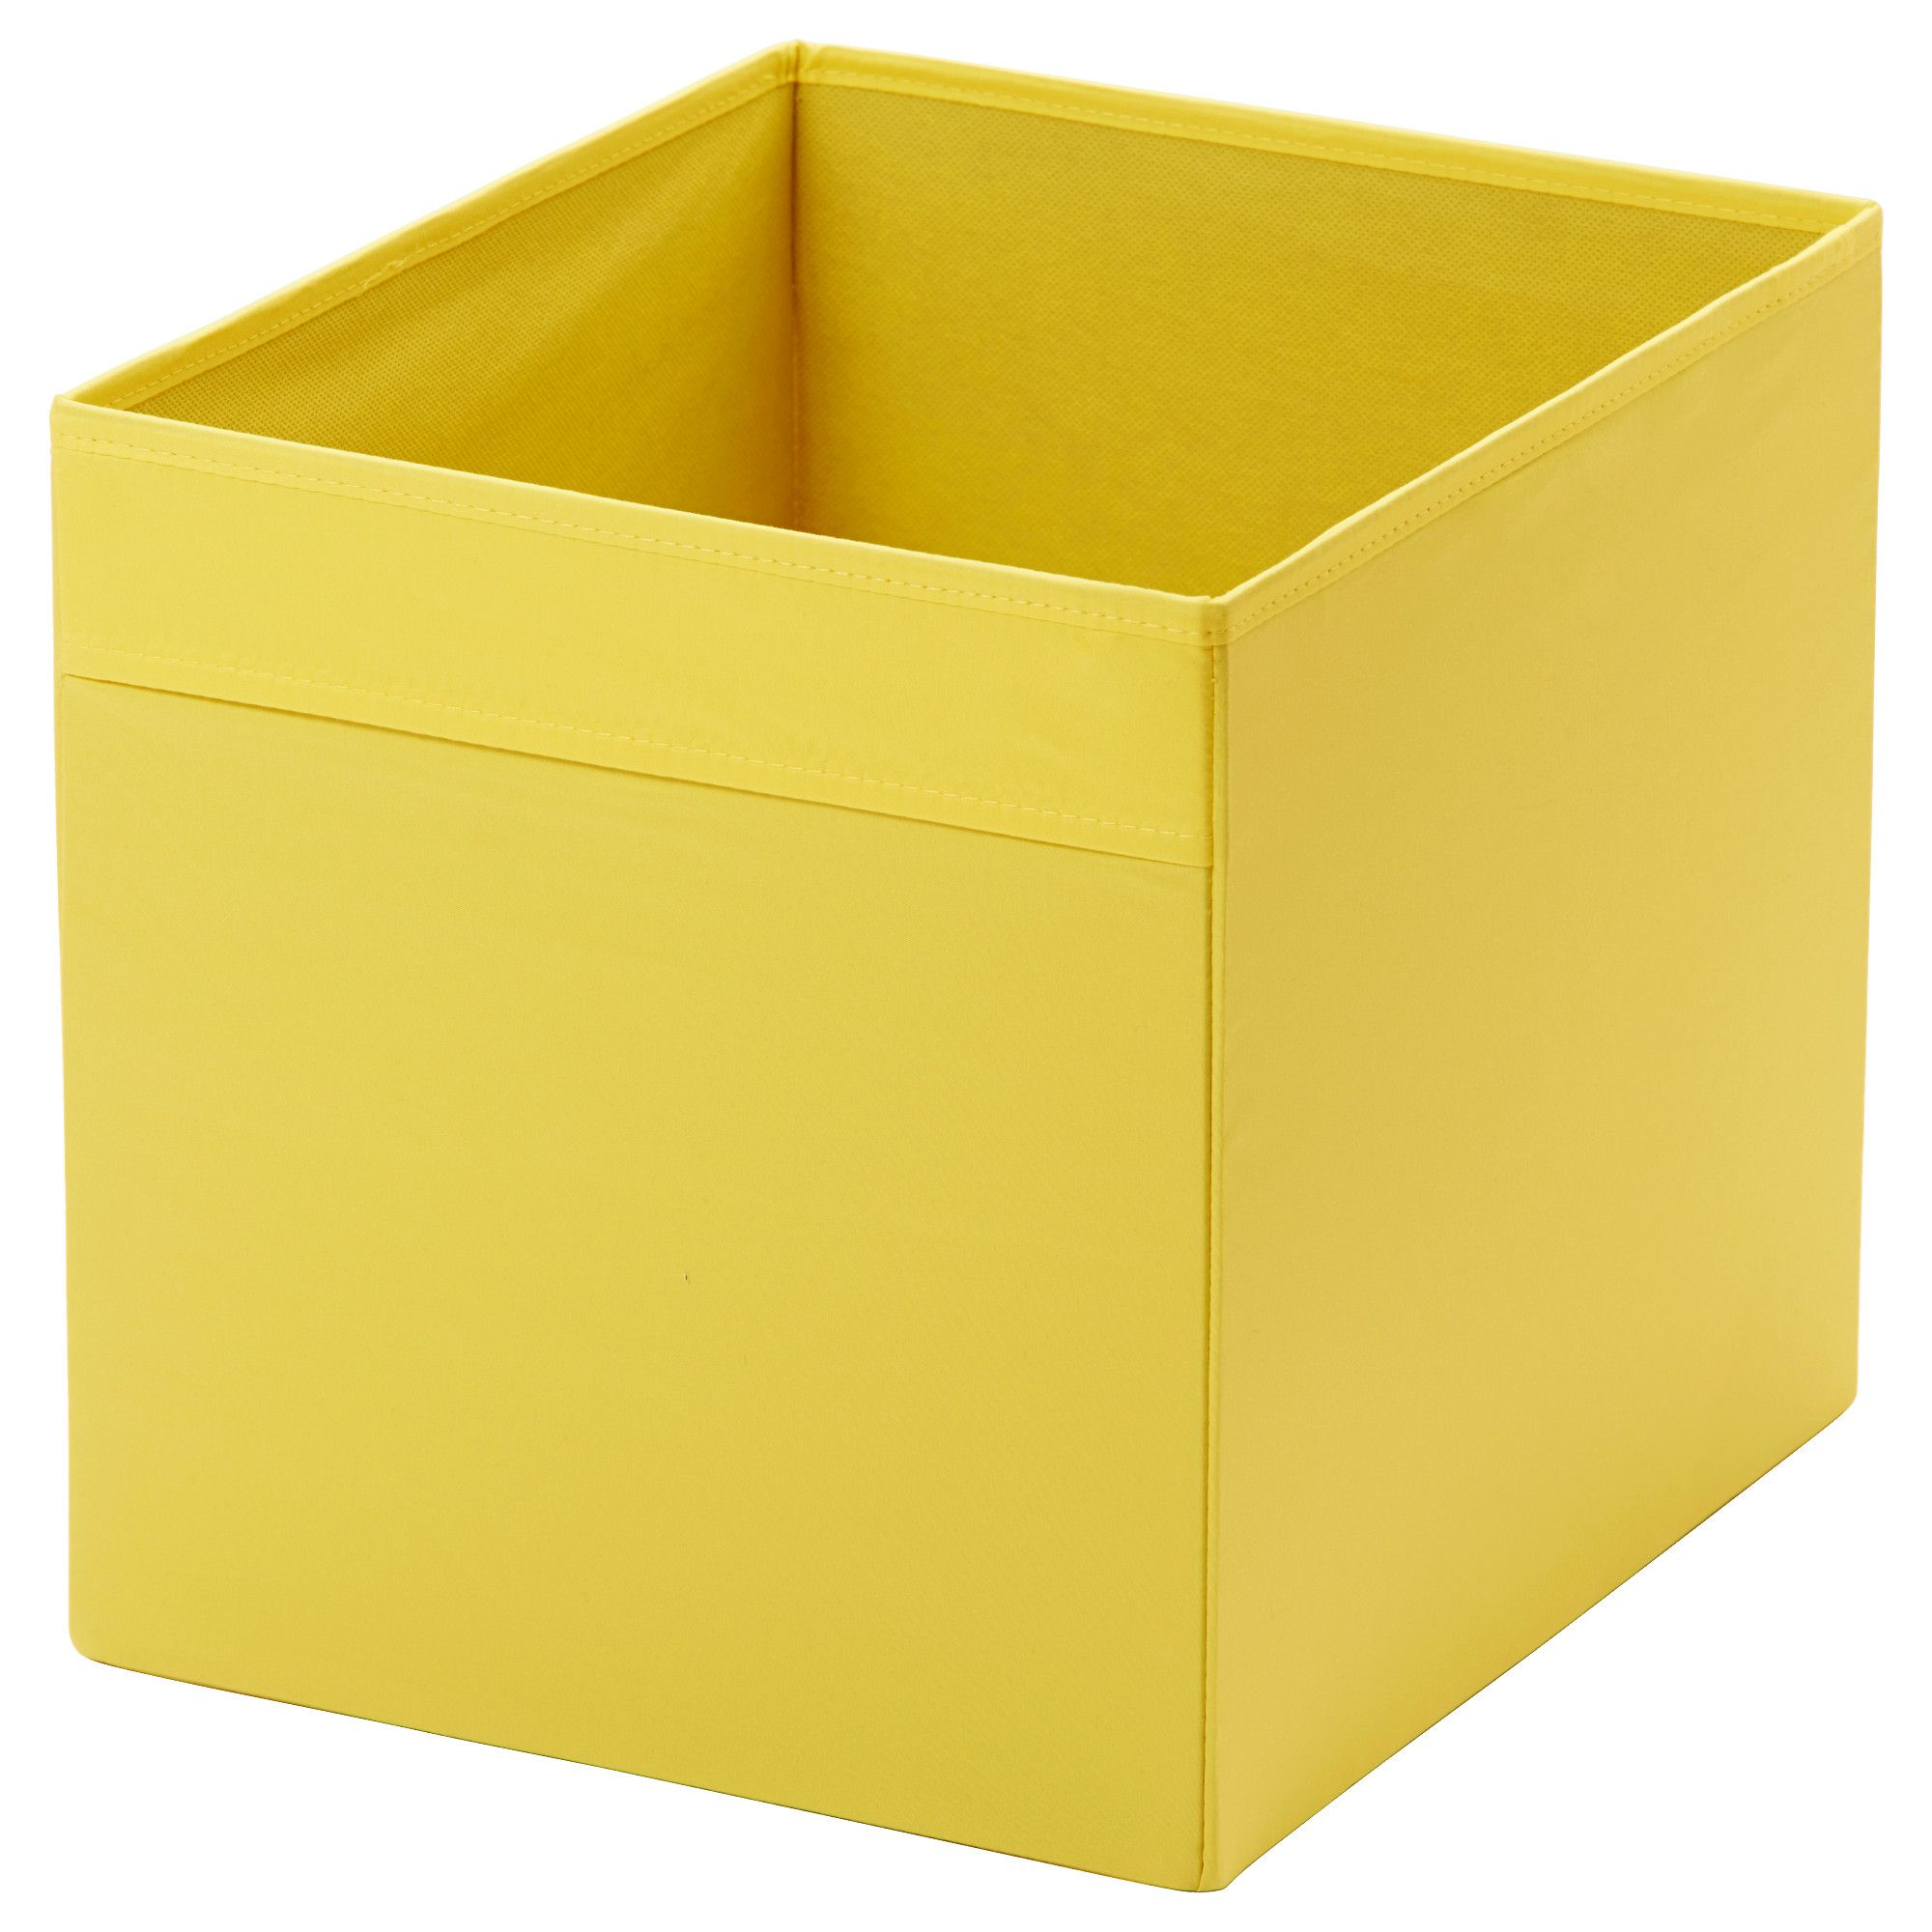 Ikea Dr Na Box Easy To Pull Out And Lift